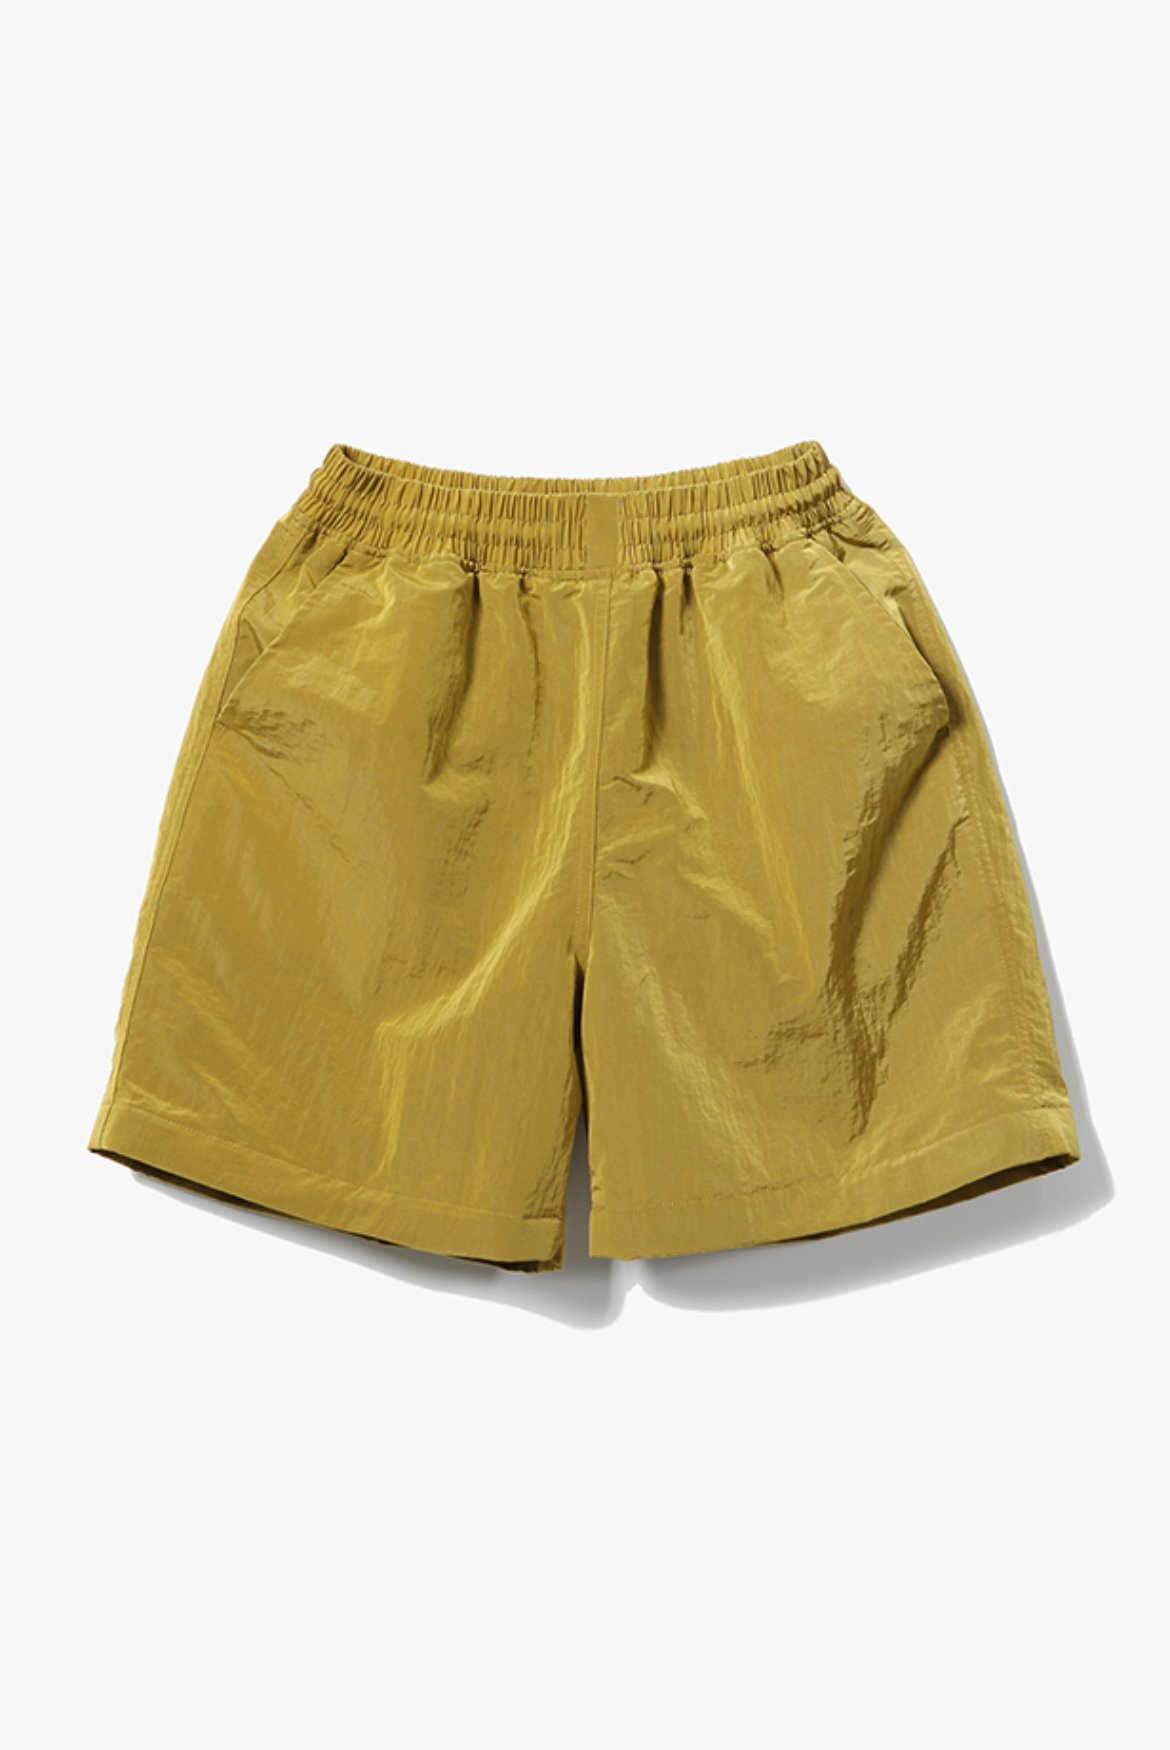 Metal Nylon Shorts [Olive]